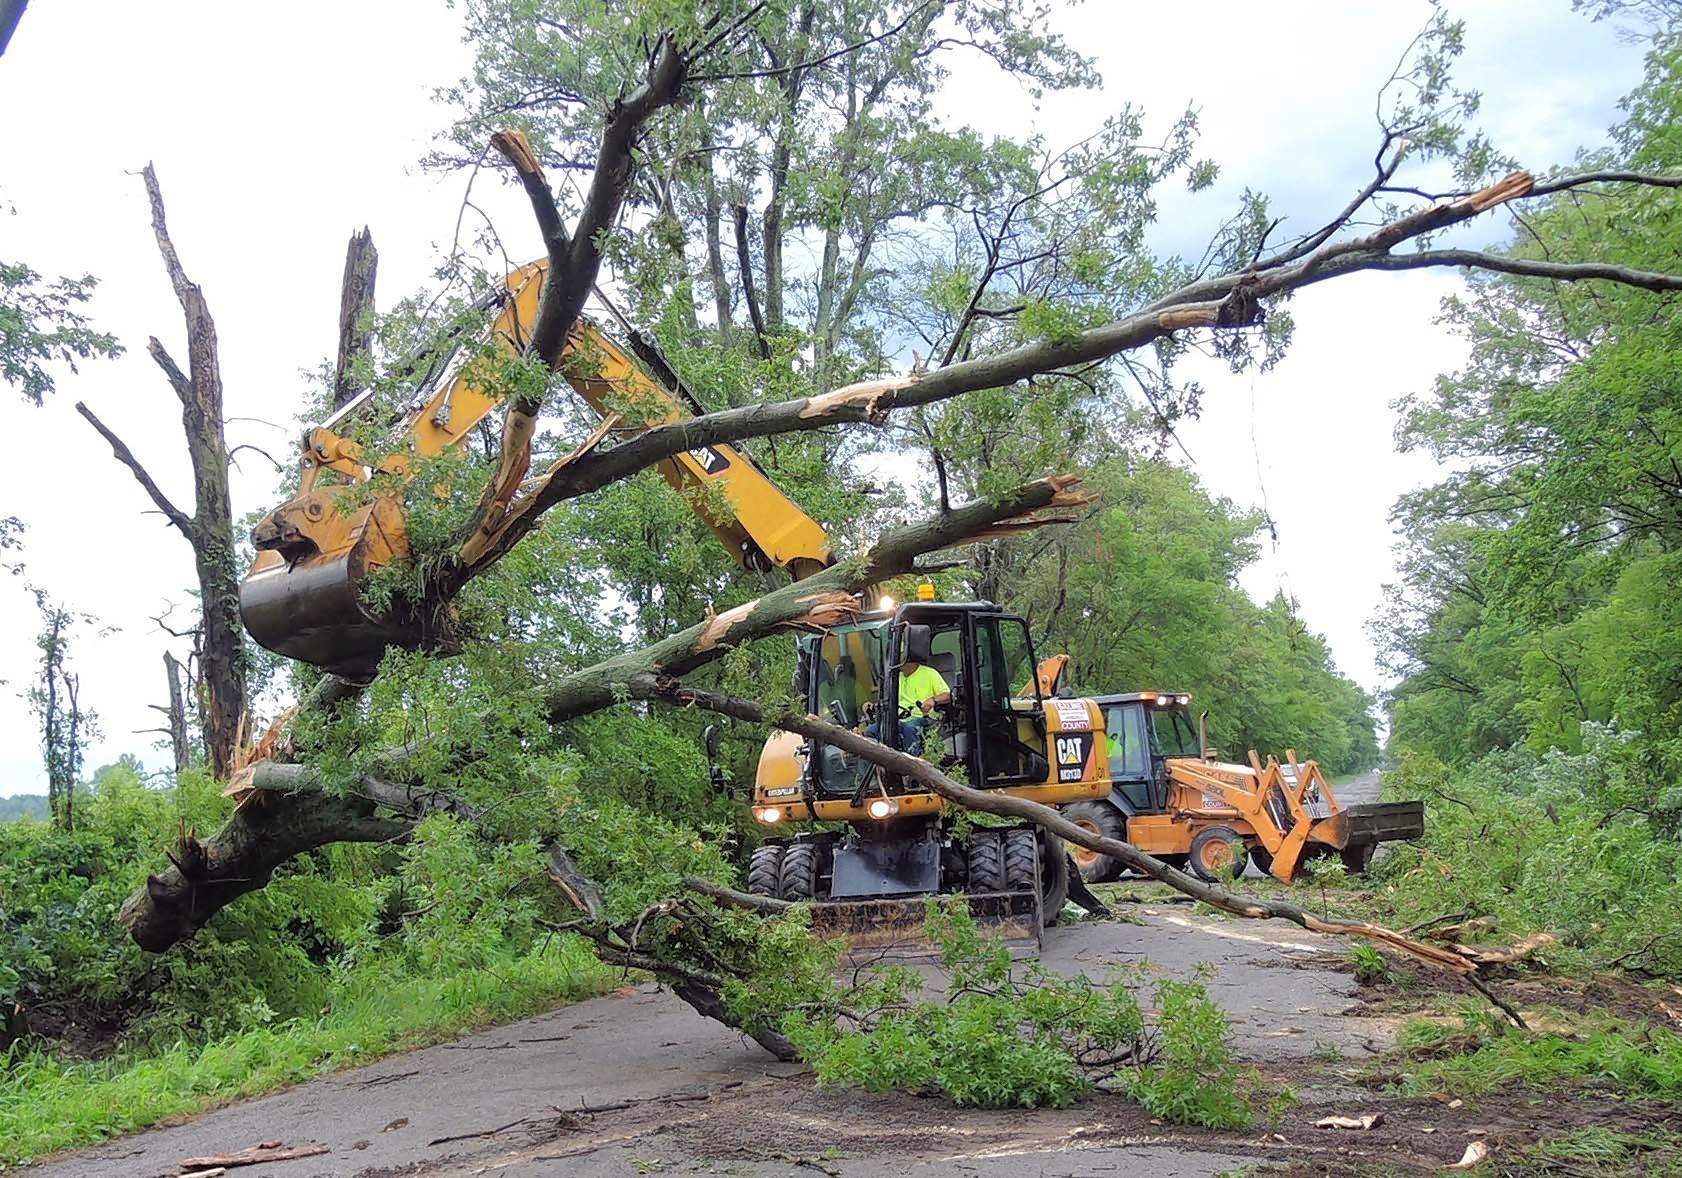 Greg Cowger, maintenance worker for the Saline County Highway Department operates an excavator to move a large tree which fell across Tuller Road during a storm Tuesday evening near Carrier Mills. Fellow worker, Brian Leibenguth, assists on the backhoe in the background.